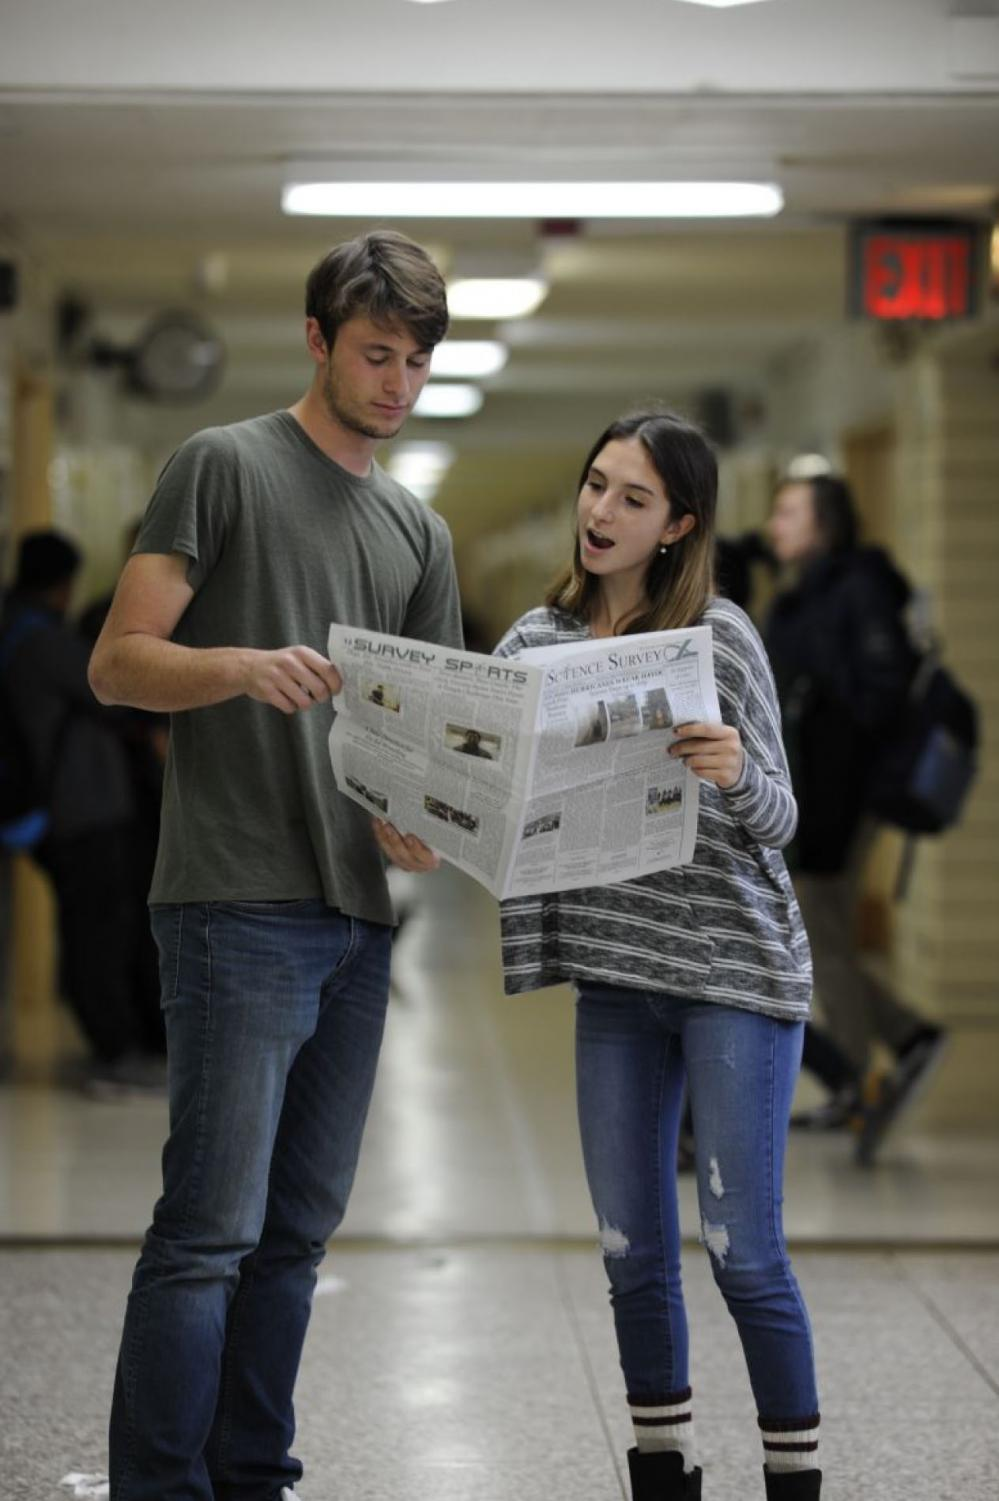 Melina Asteriadis '18 and Teddy Lowen '18 have a cumulative seven years' worth of advice on studying for exams.